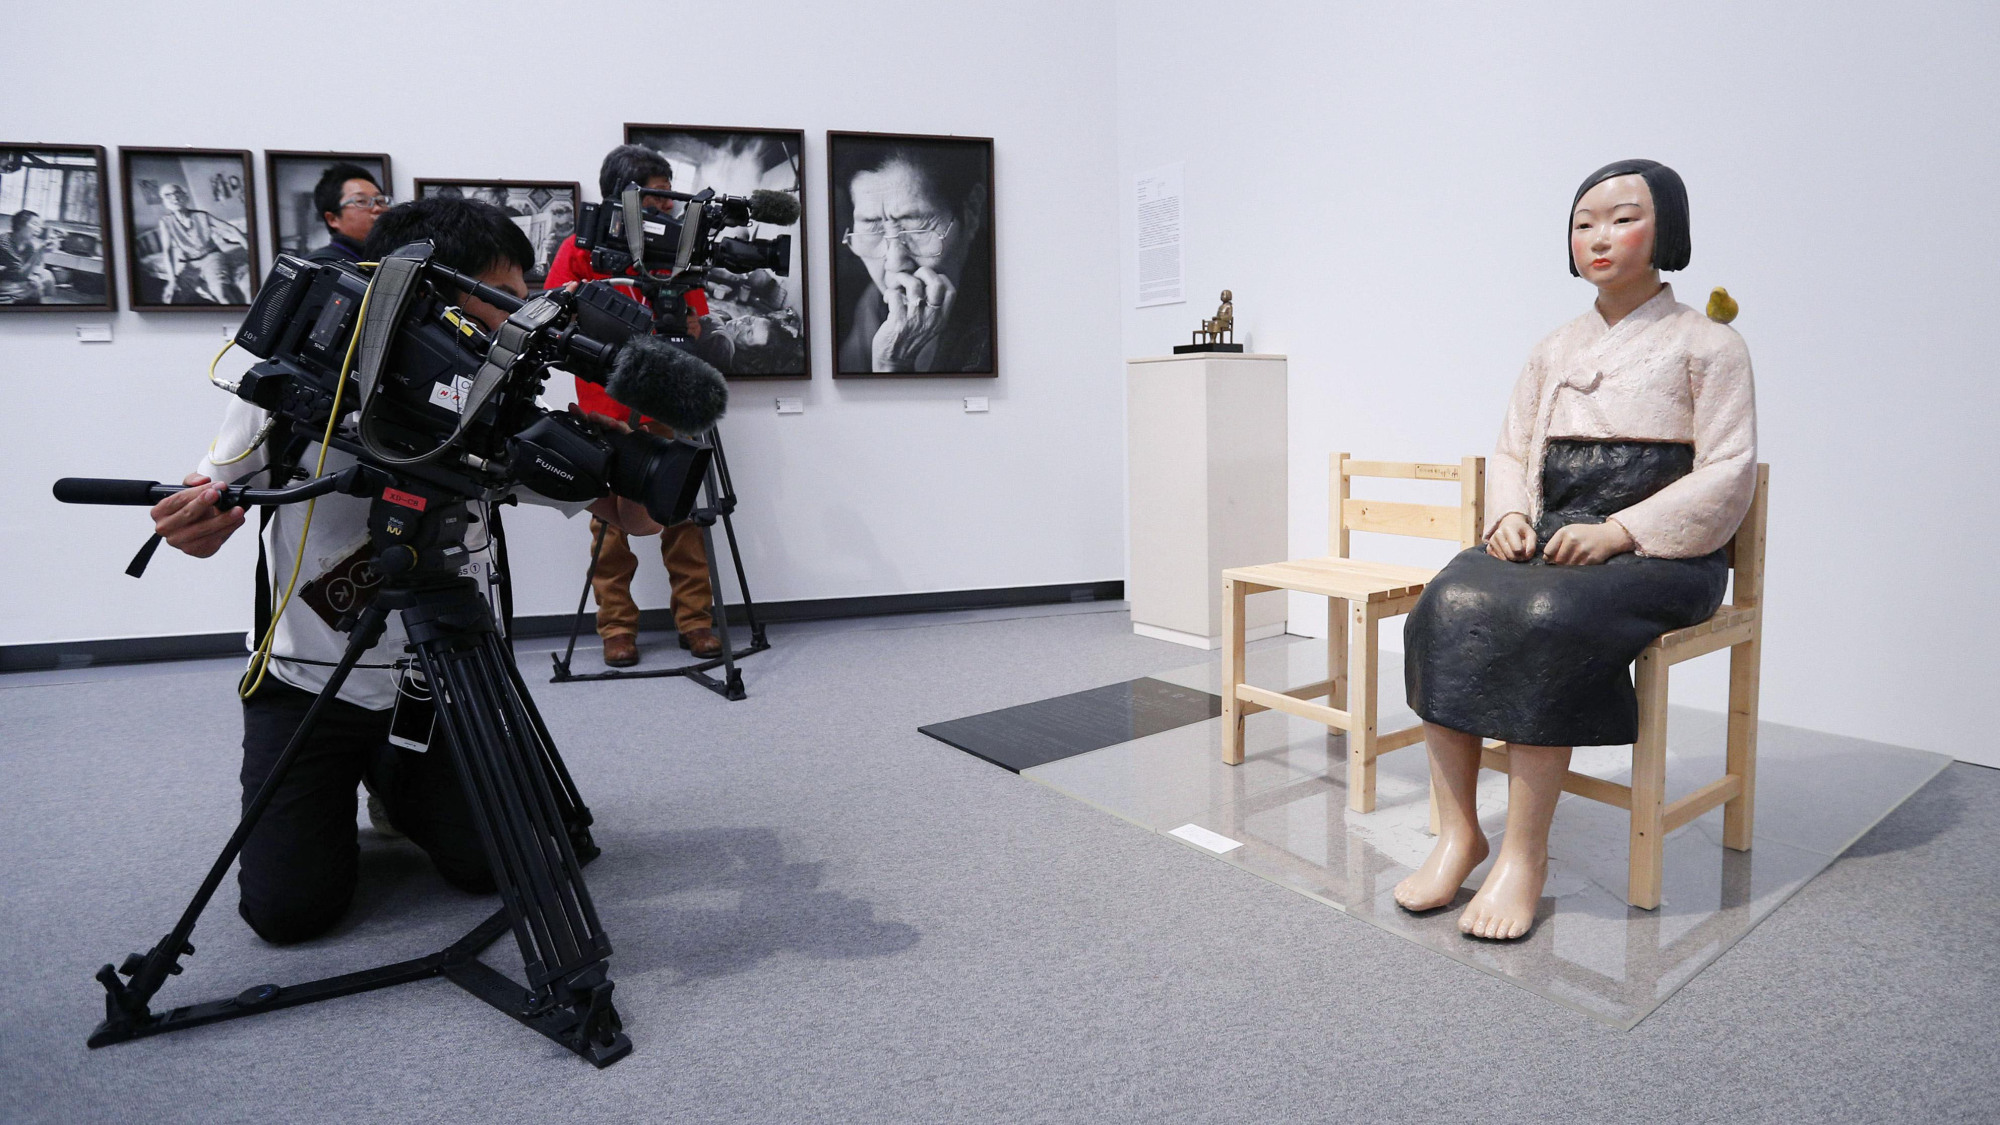 A videographer captures images of a statue symbolizing the 'comfort women' at the Aichi Triennale modern art festival in Nagoya on Aug. 3. | KYODO